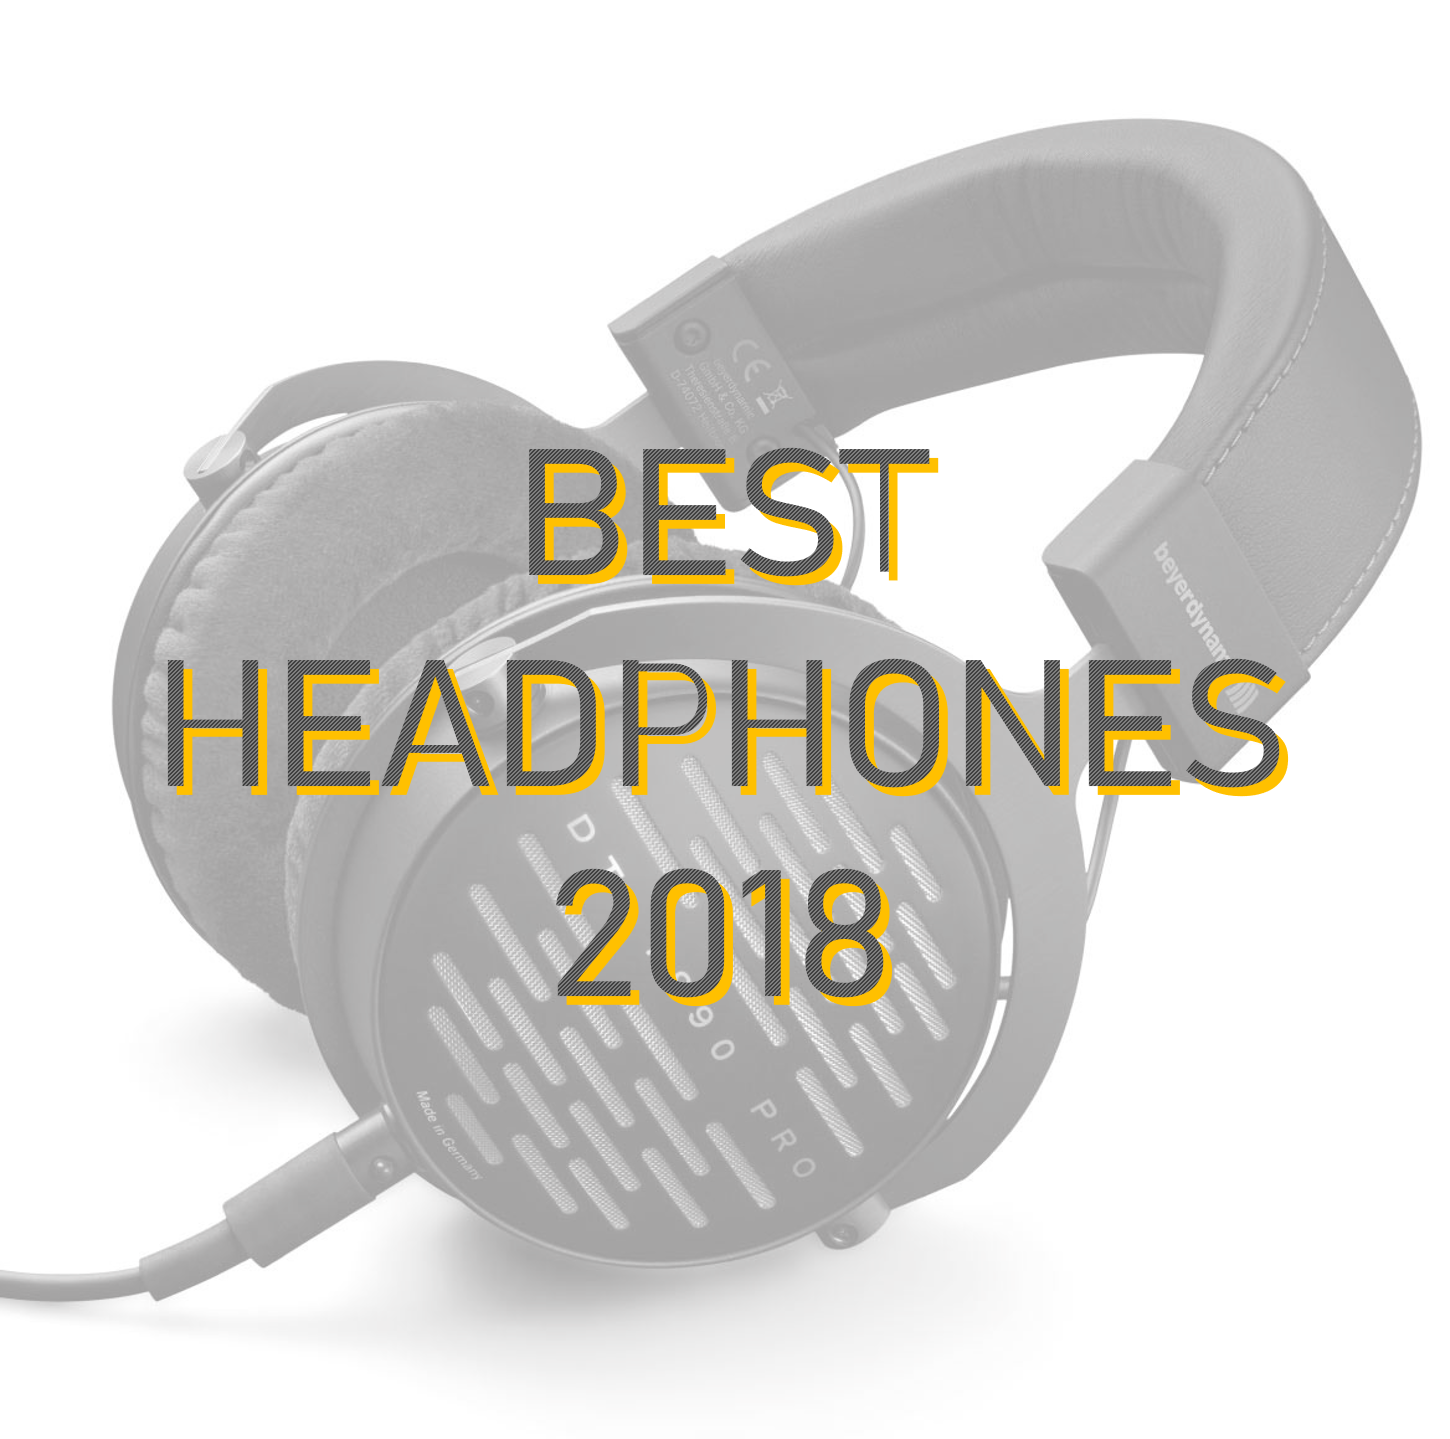 Best Headphones 2018